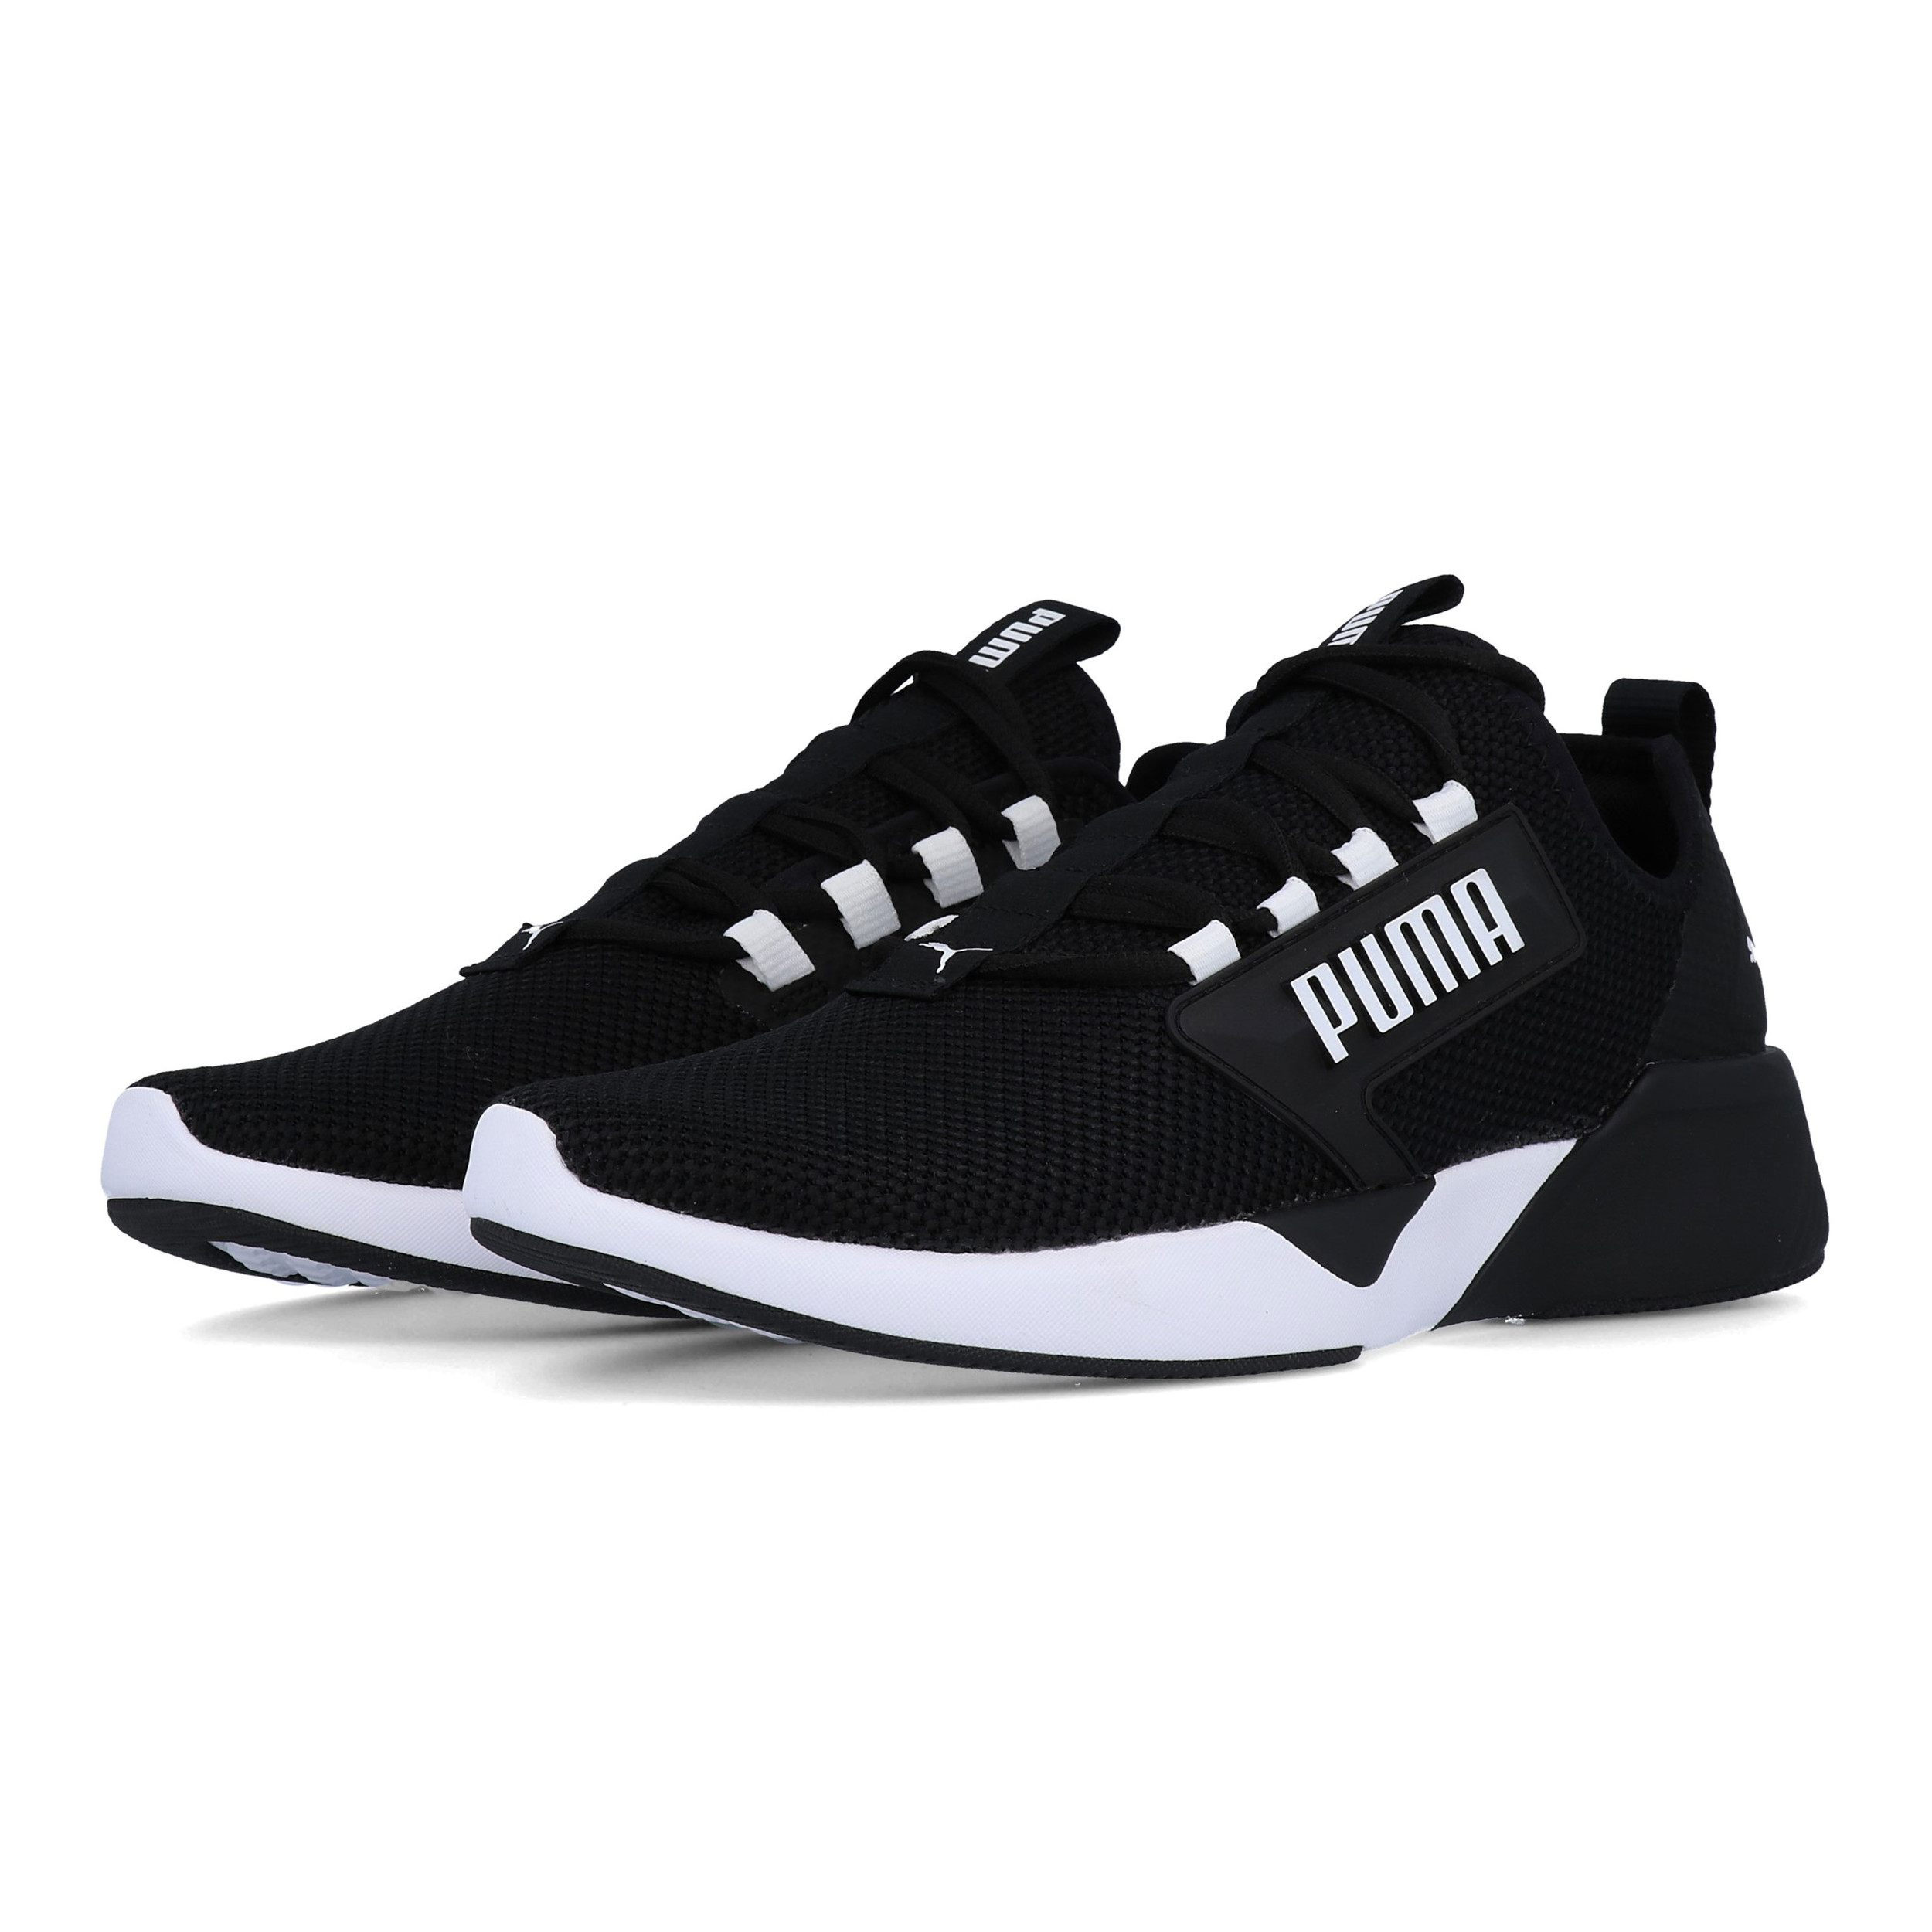 aa55e7495 Details about Puma Mens Retaliate Training Gym Fitness Shoes Black White  Sports Running